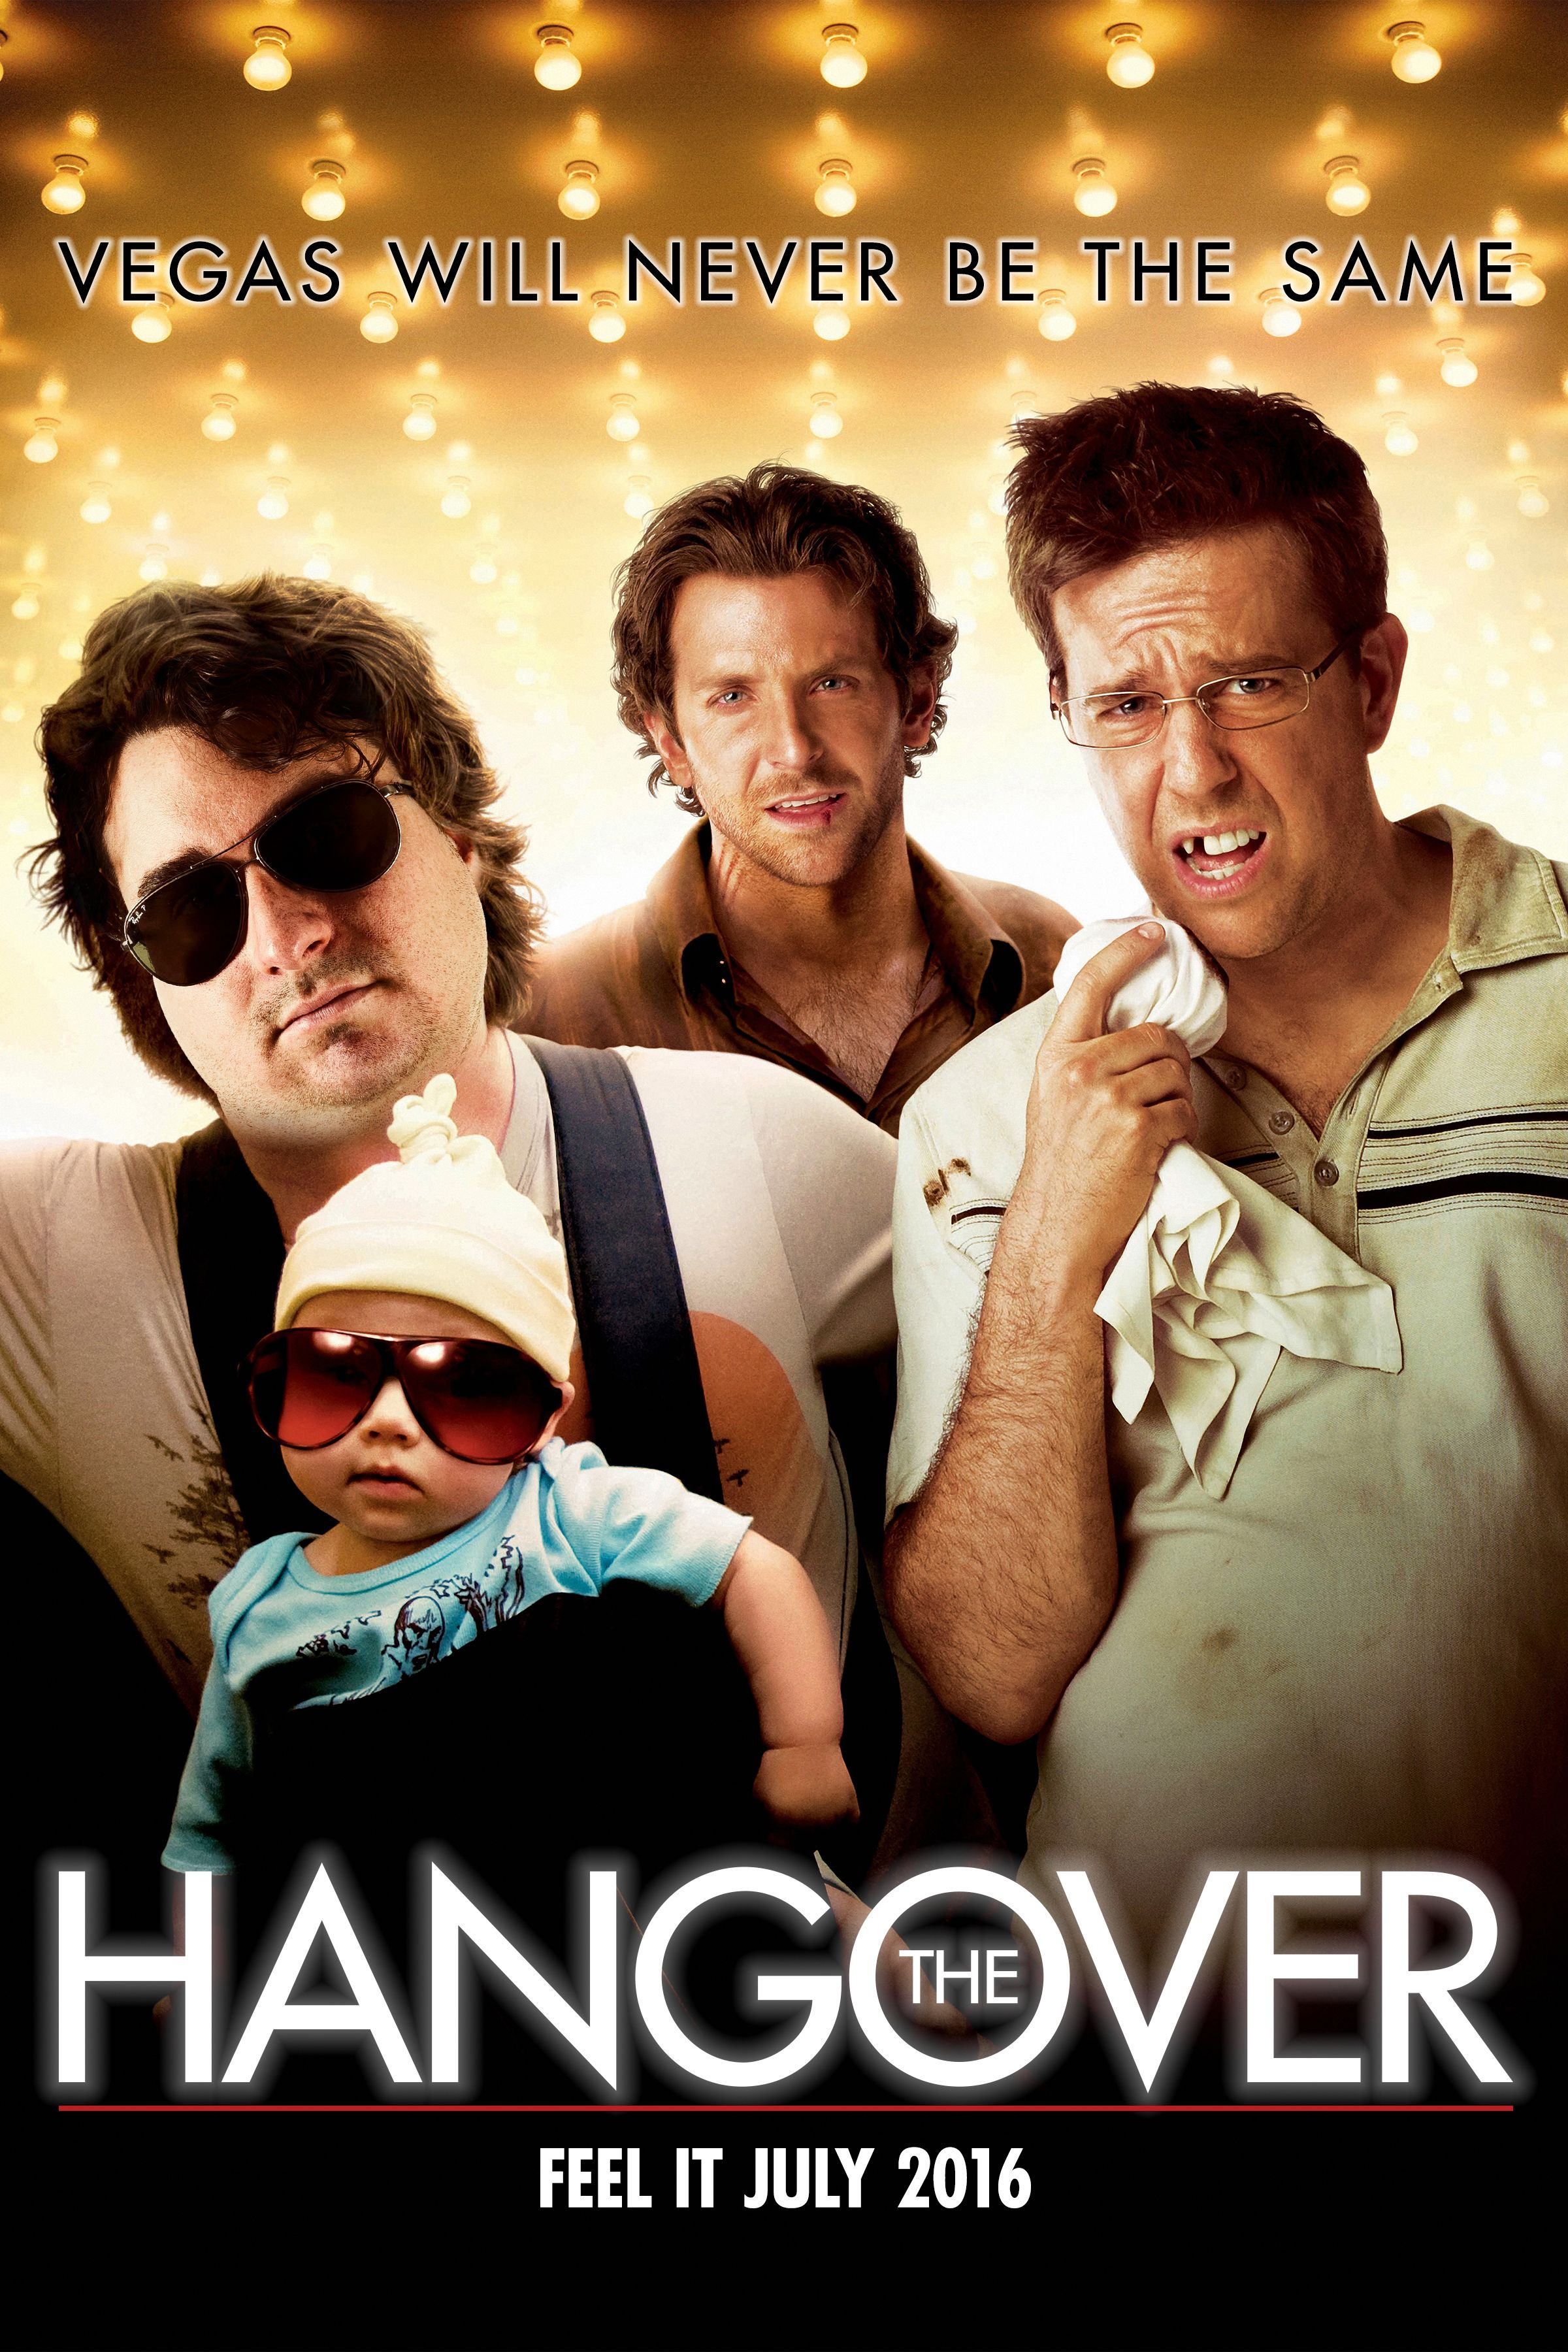 The  Hangover Baby Announcement!  Vegas will never be the same.